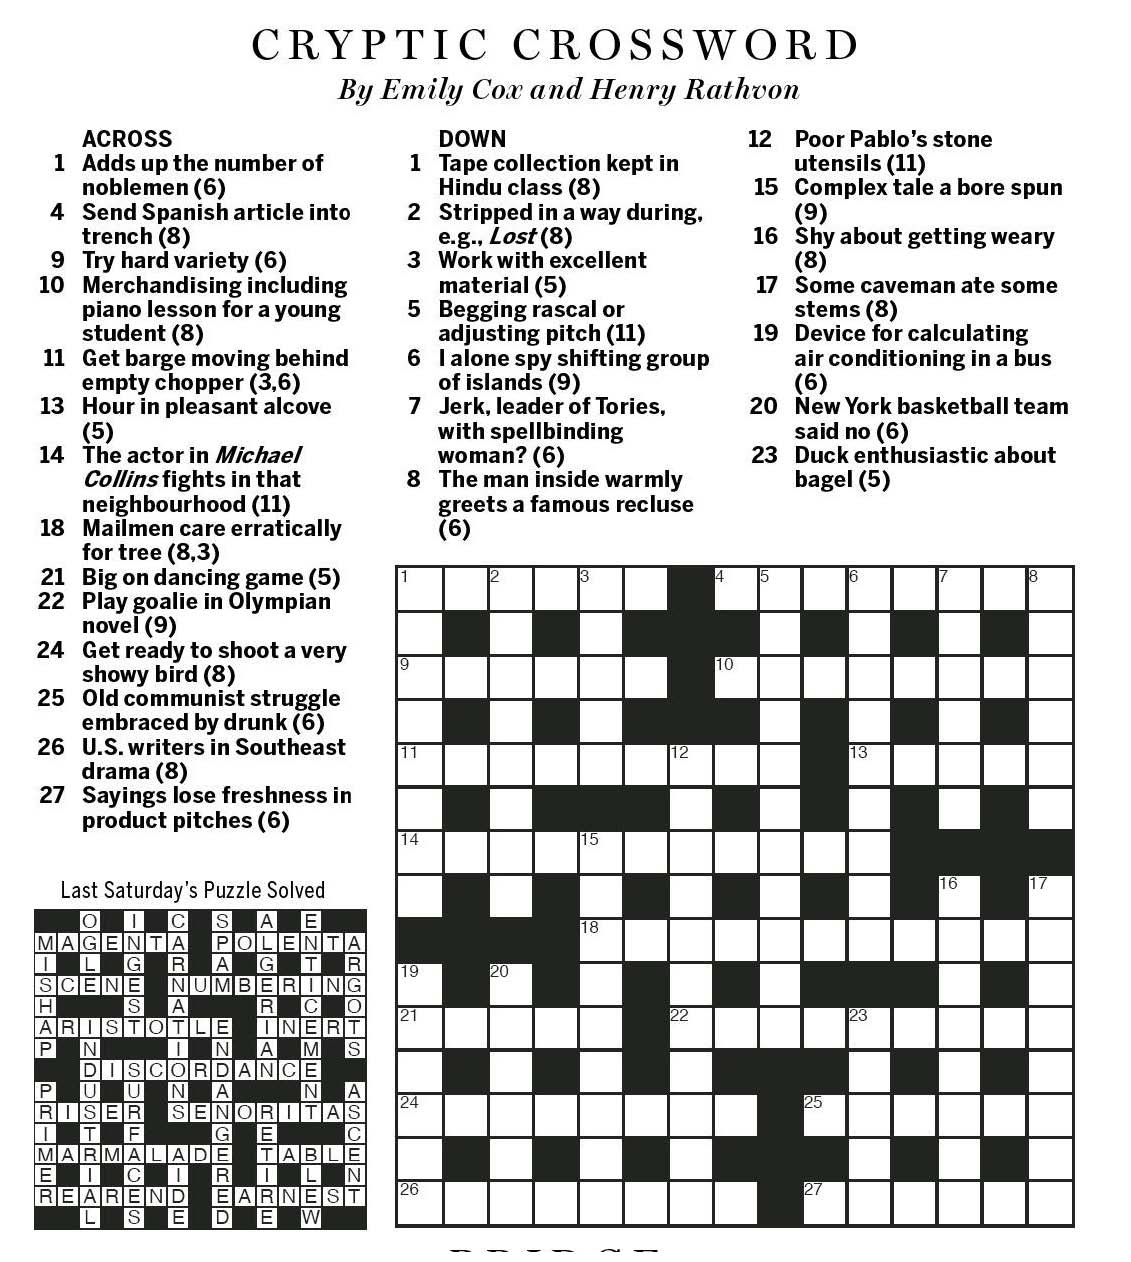 Greets in a way crossword clue gallery greeting card examples greets in a way crossword clue image collections greeting card national post cryptic crossword forum saturday kristyandbryce Choice Image